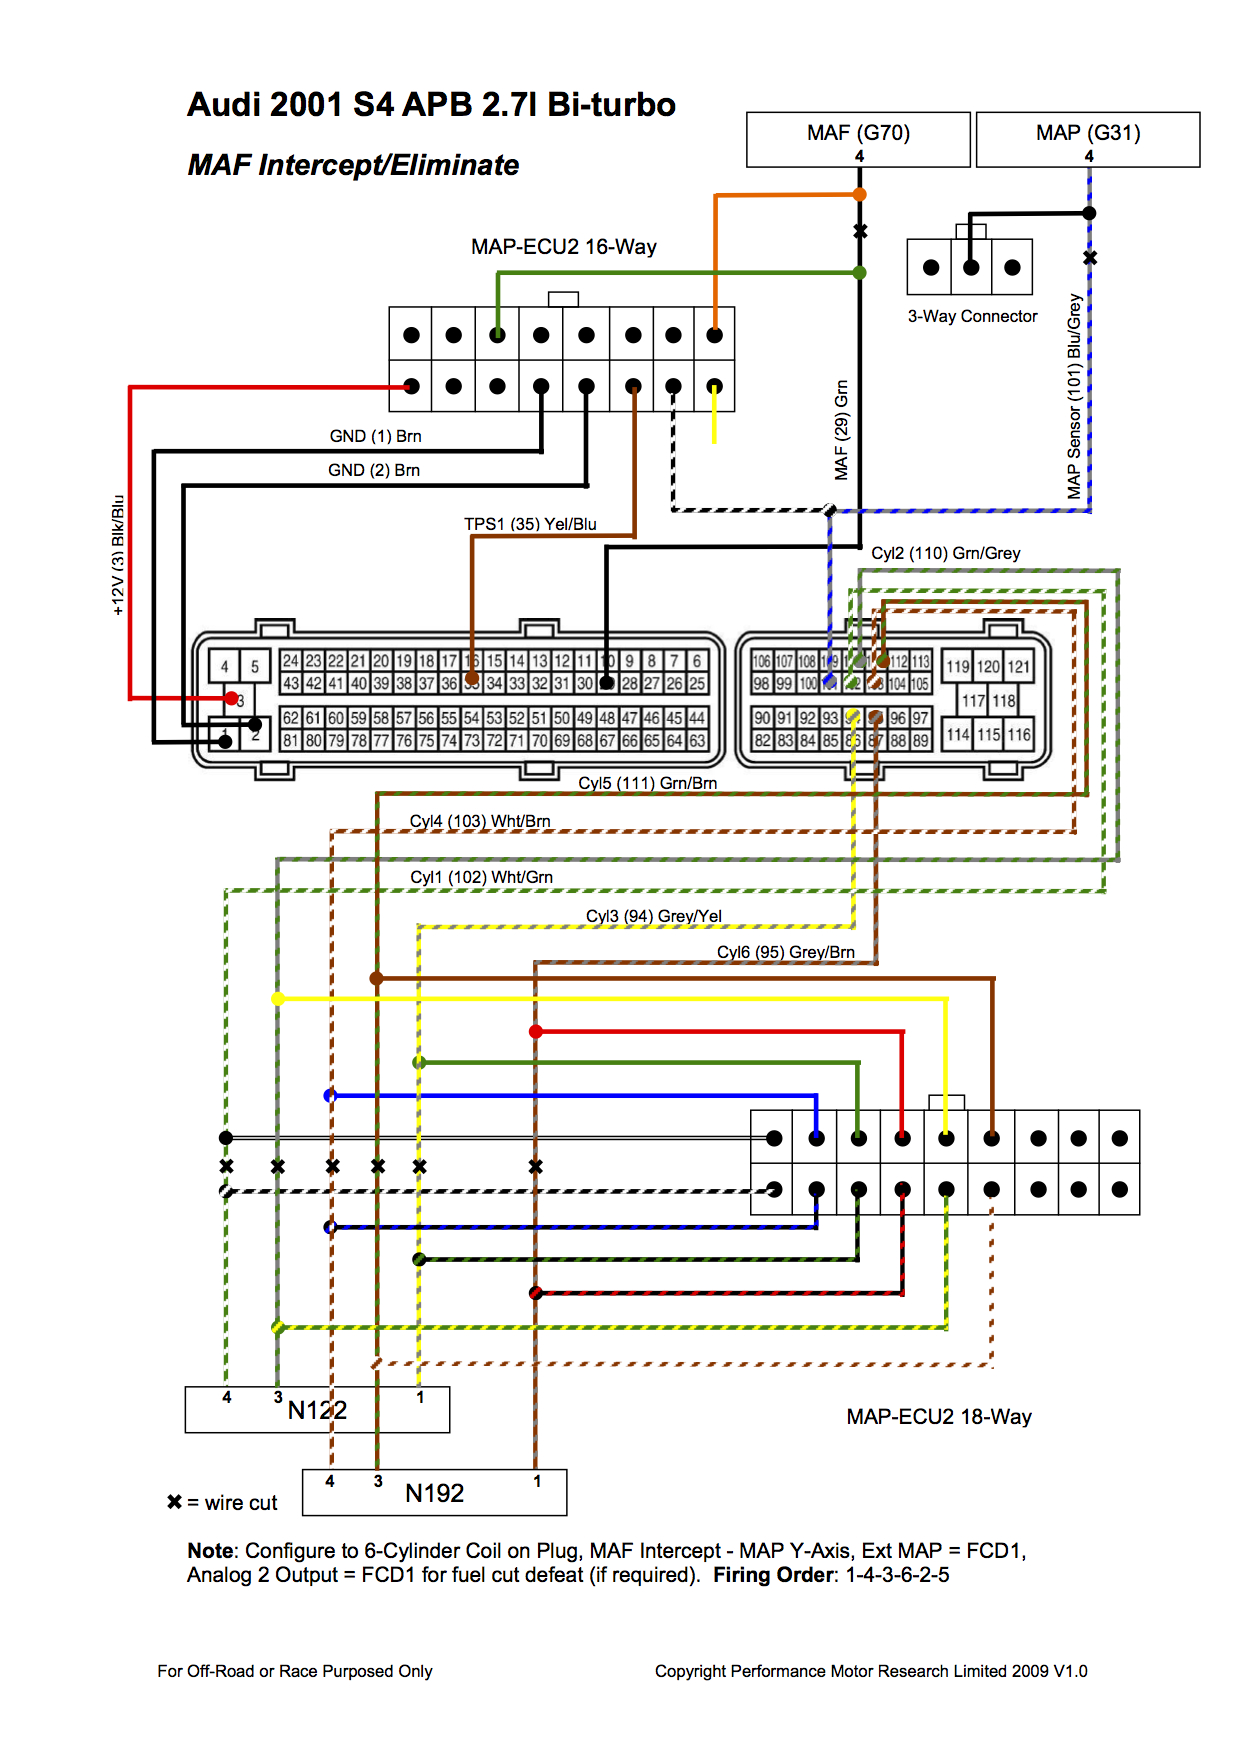 Audi S4 20011 mapecu wiring diagrams audi, bmw, ford, honda, lexus, nissan, toyota 2001 996 Turbo Fuse Diagram at edmiracle.co